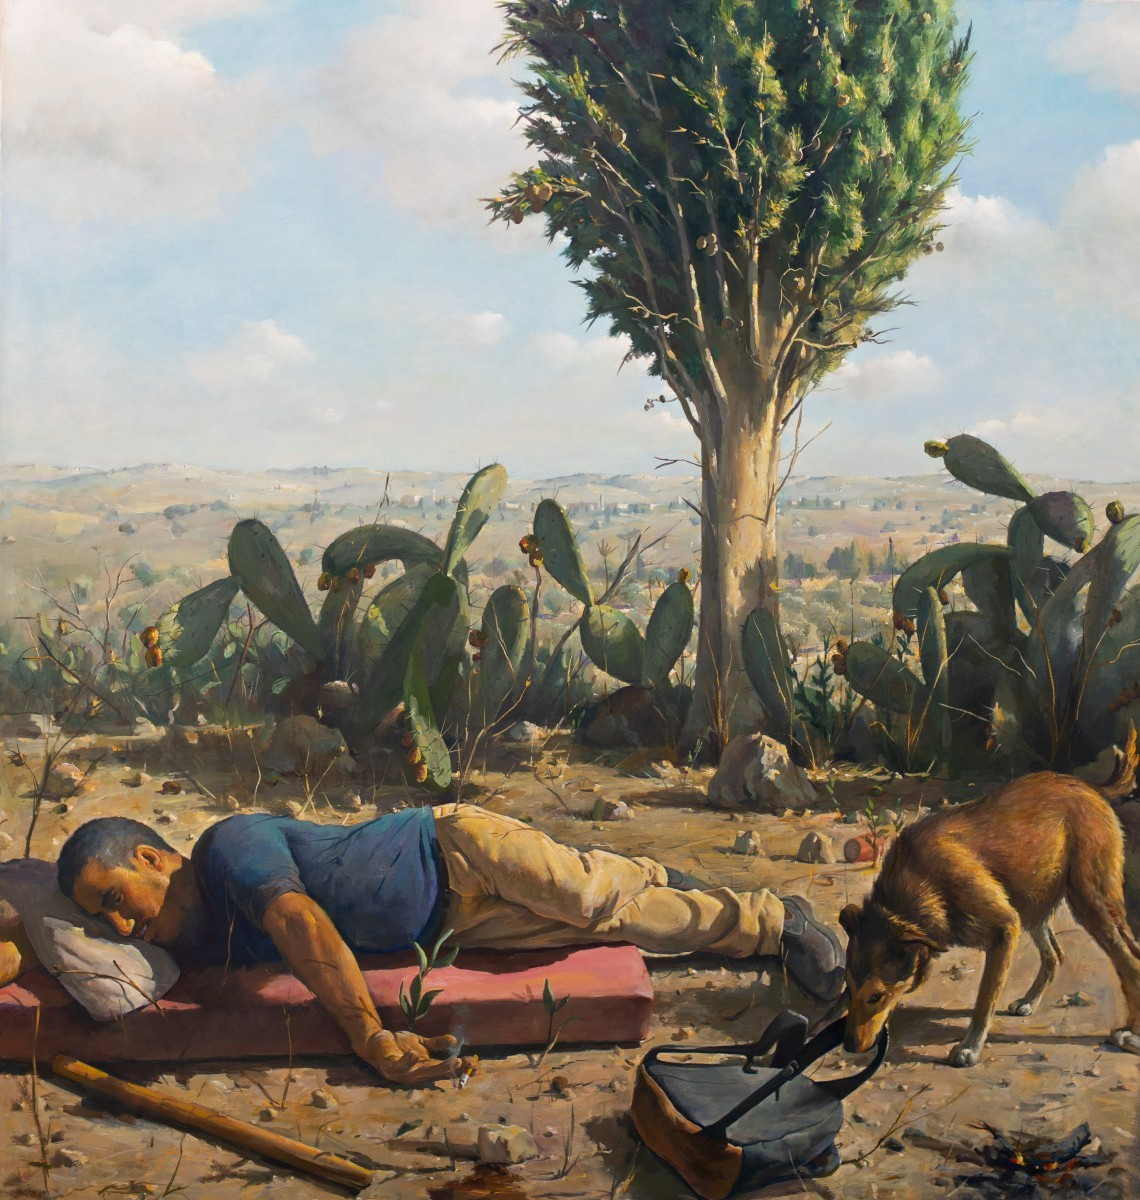 Ilan Baruch, Rest, Oil on canvas 150 x 140 cm, 15,000$